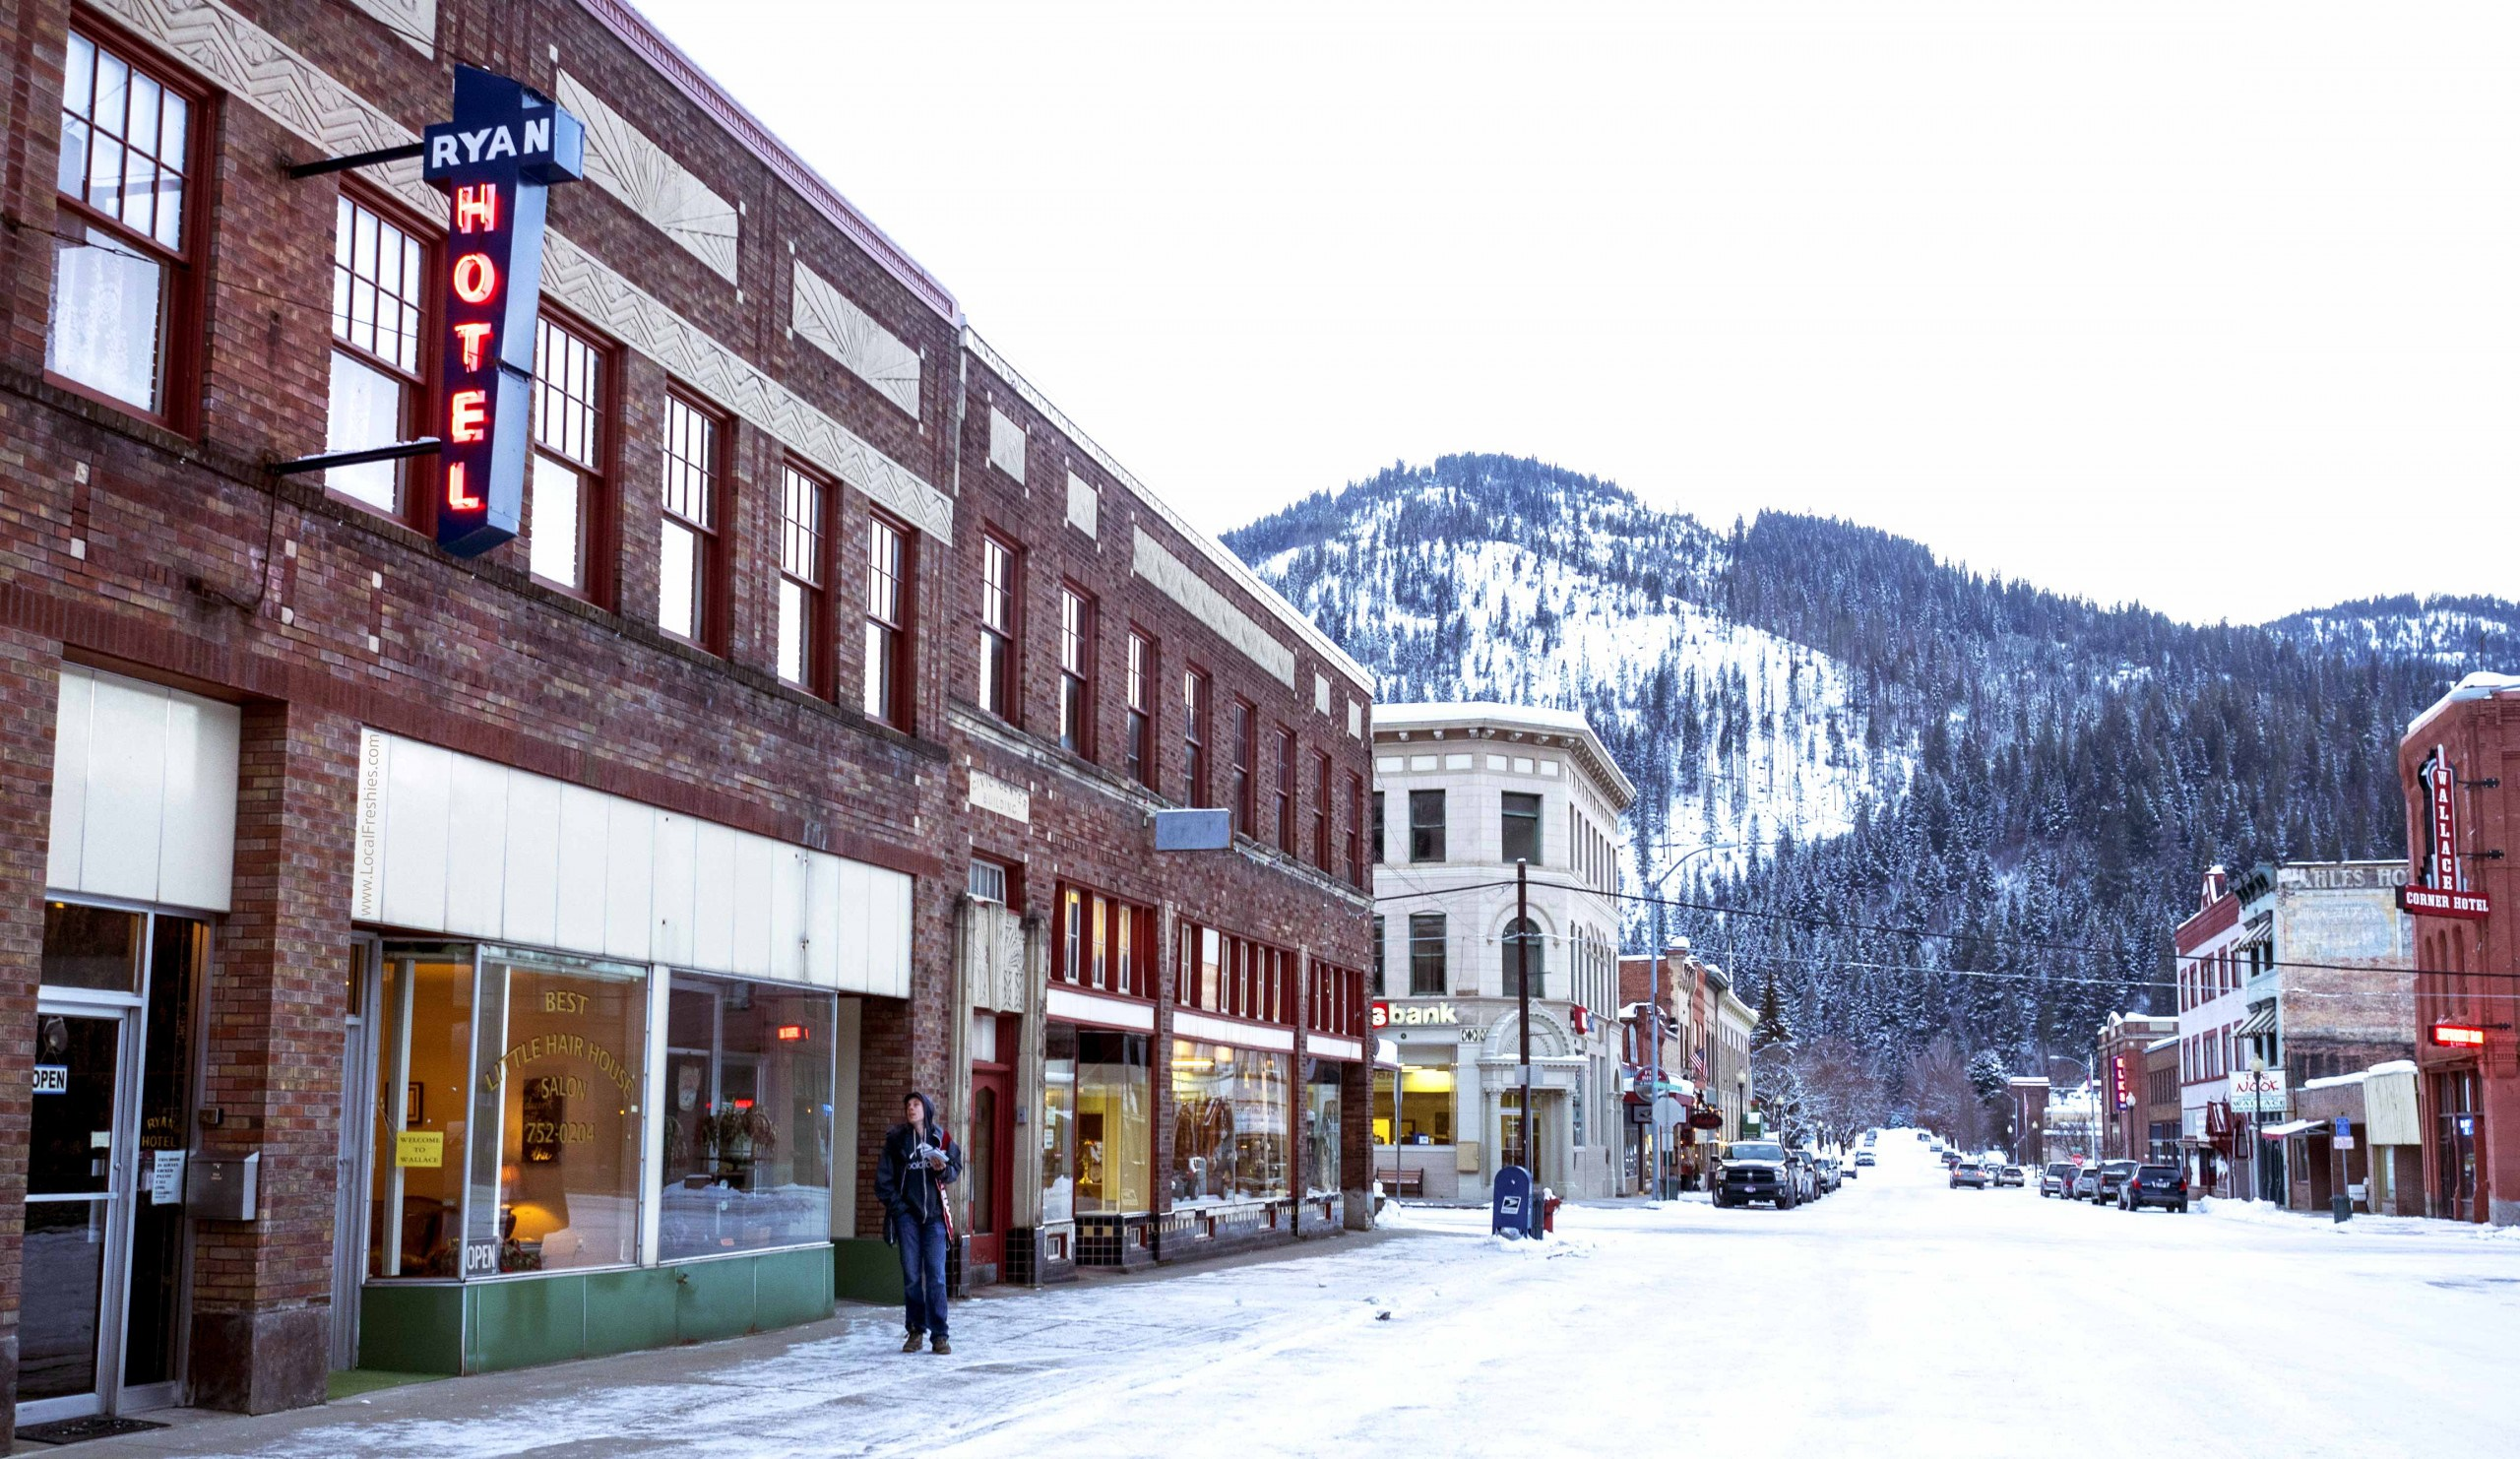 exterior of the Ryan Hotel in winter in Wallace Idaho